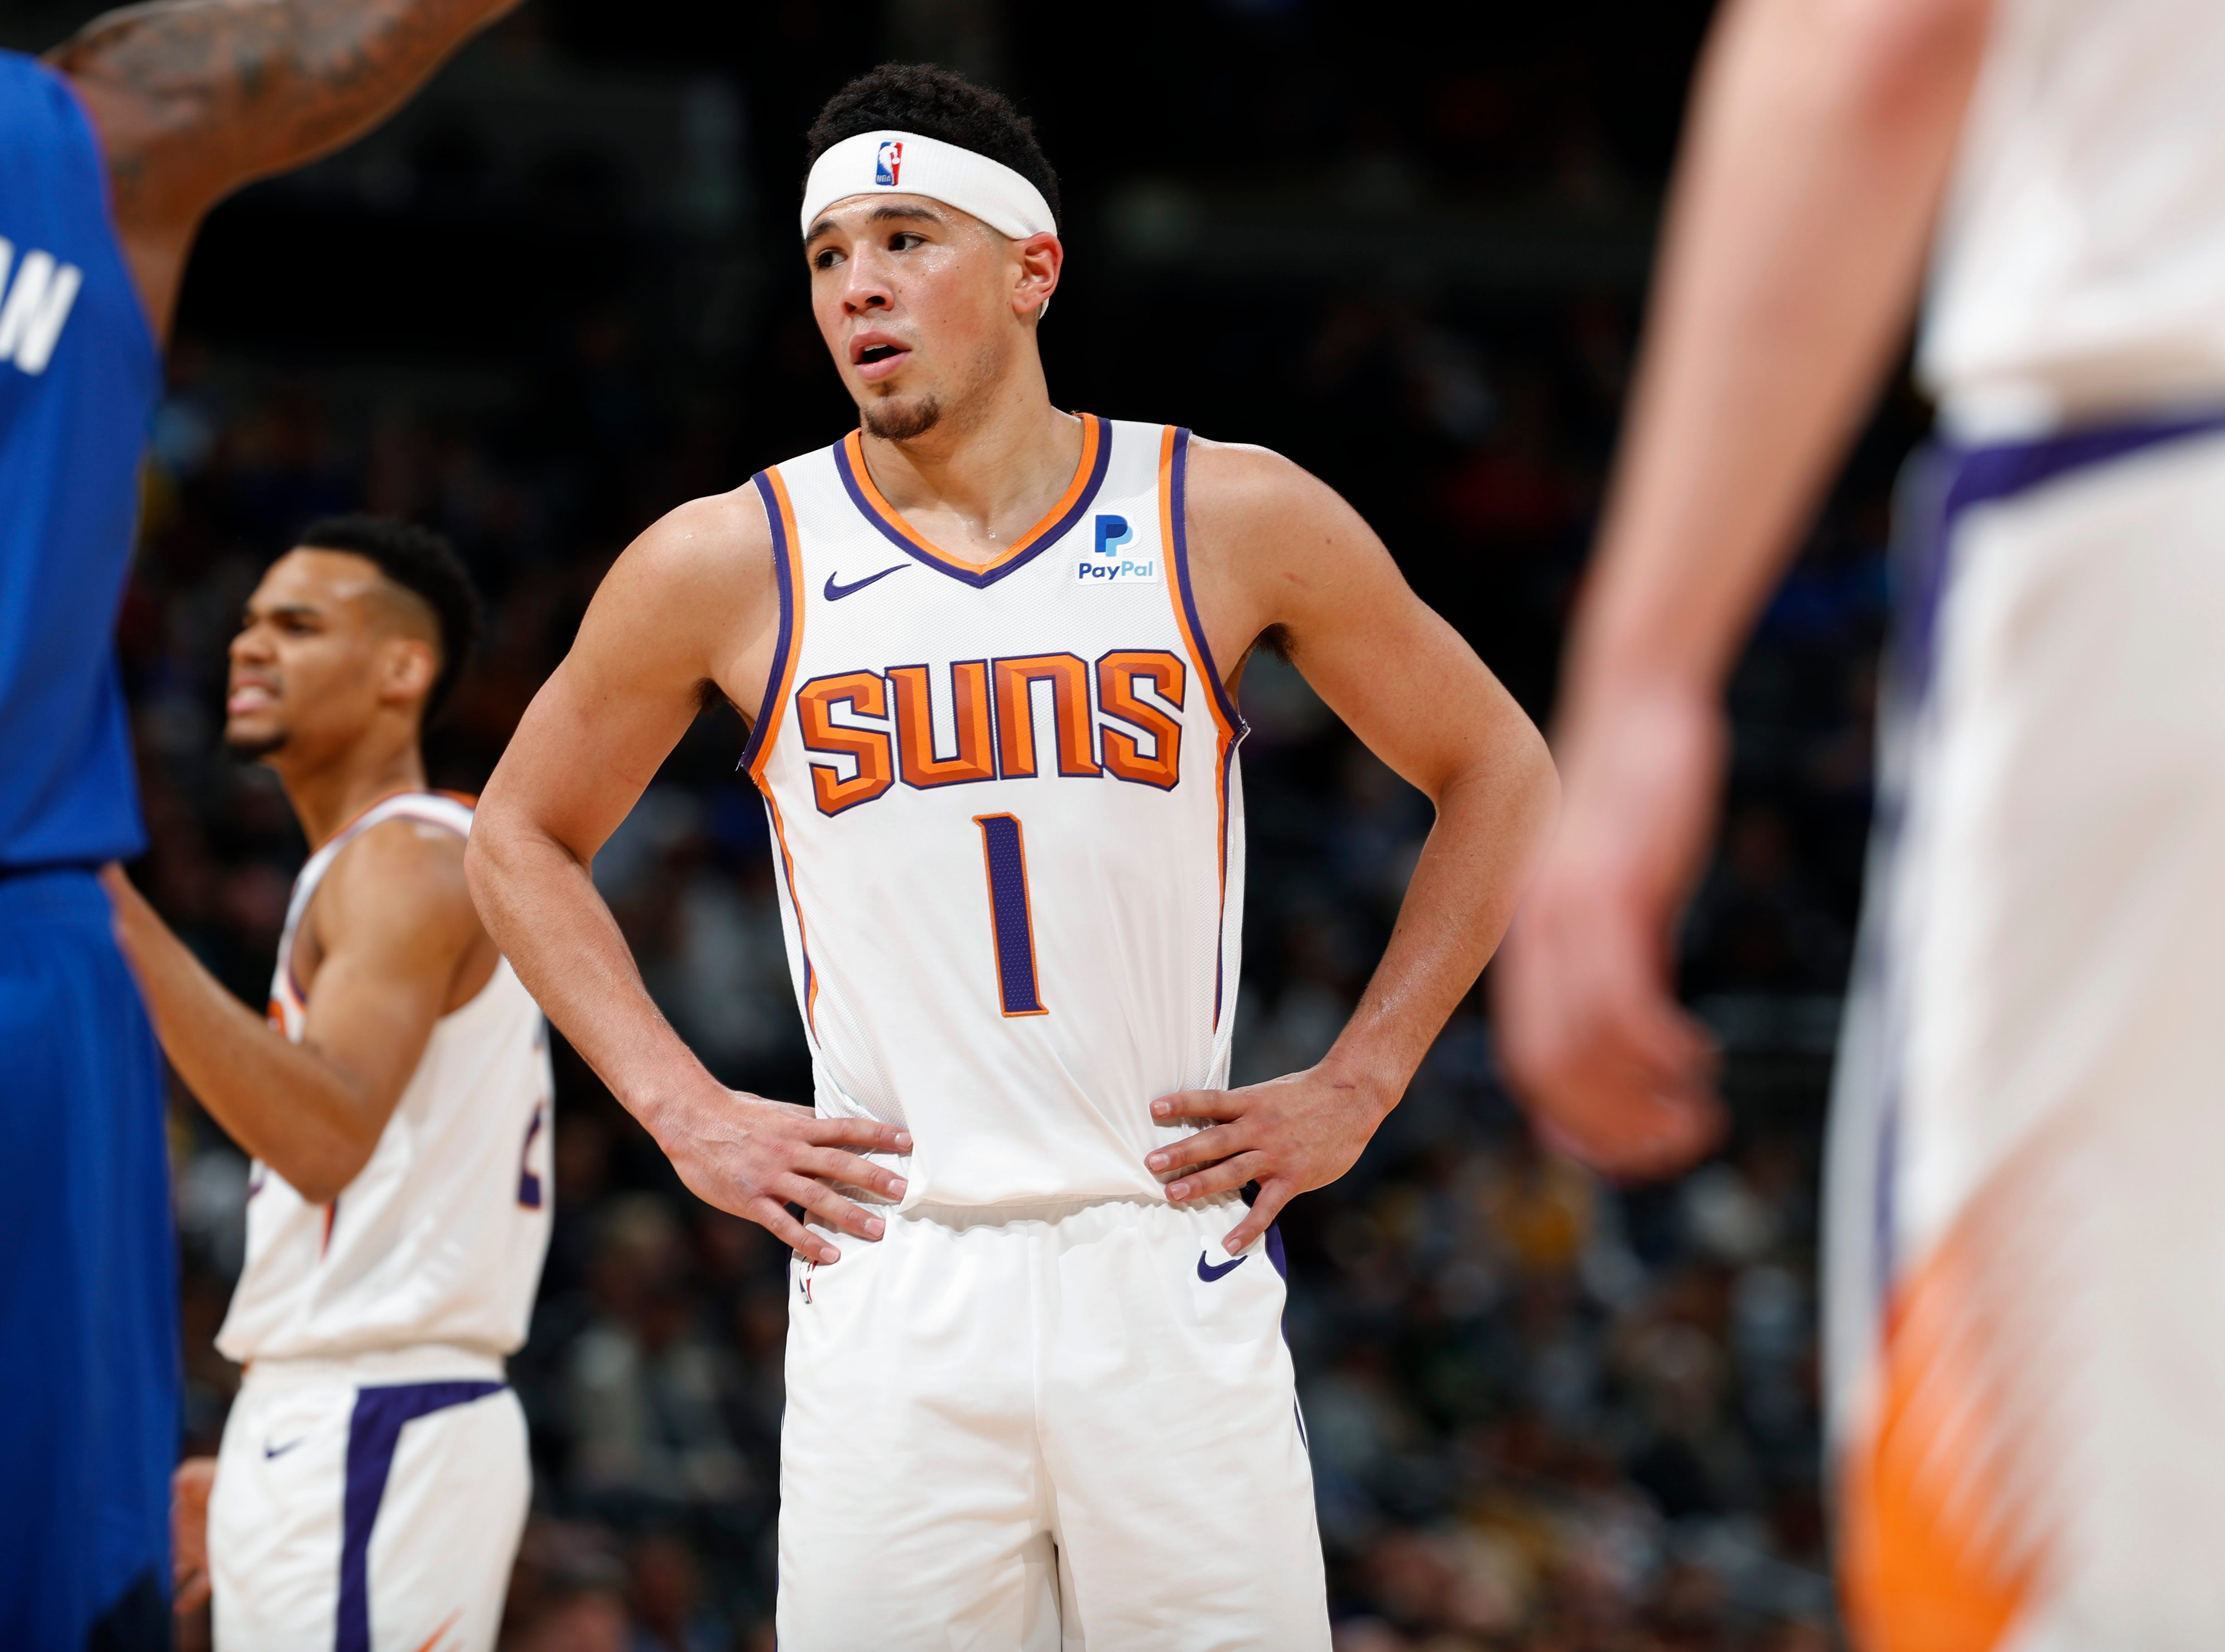 Phoenix Suns guard Devin Booker waits to shoot a free throw against the Denver Nuggets in the first half of an NBA basketball game Friday, Jan. 25, 2019, in Denver. (AP Photo/David Zalubowski)